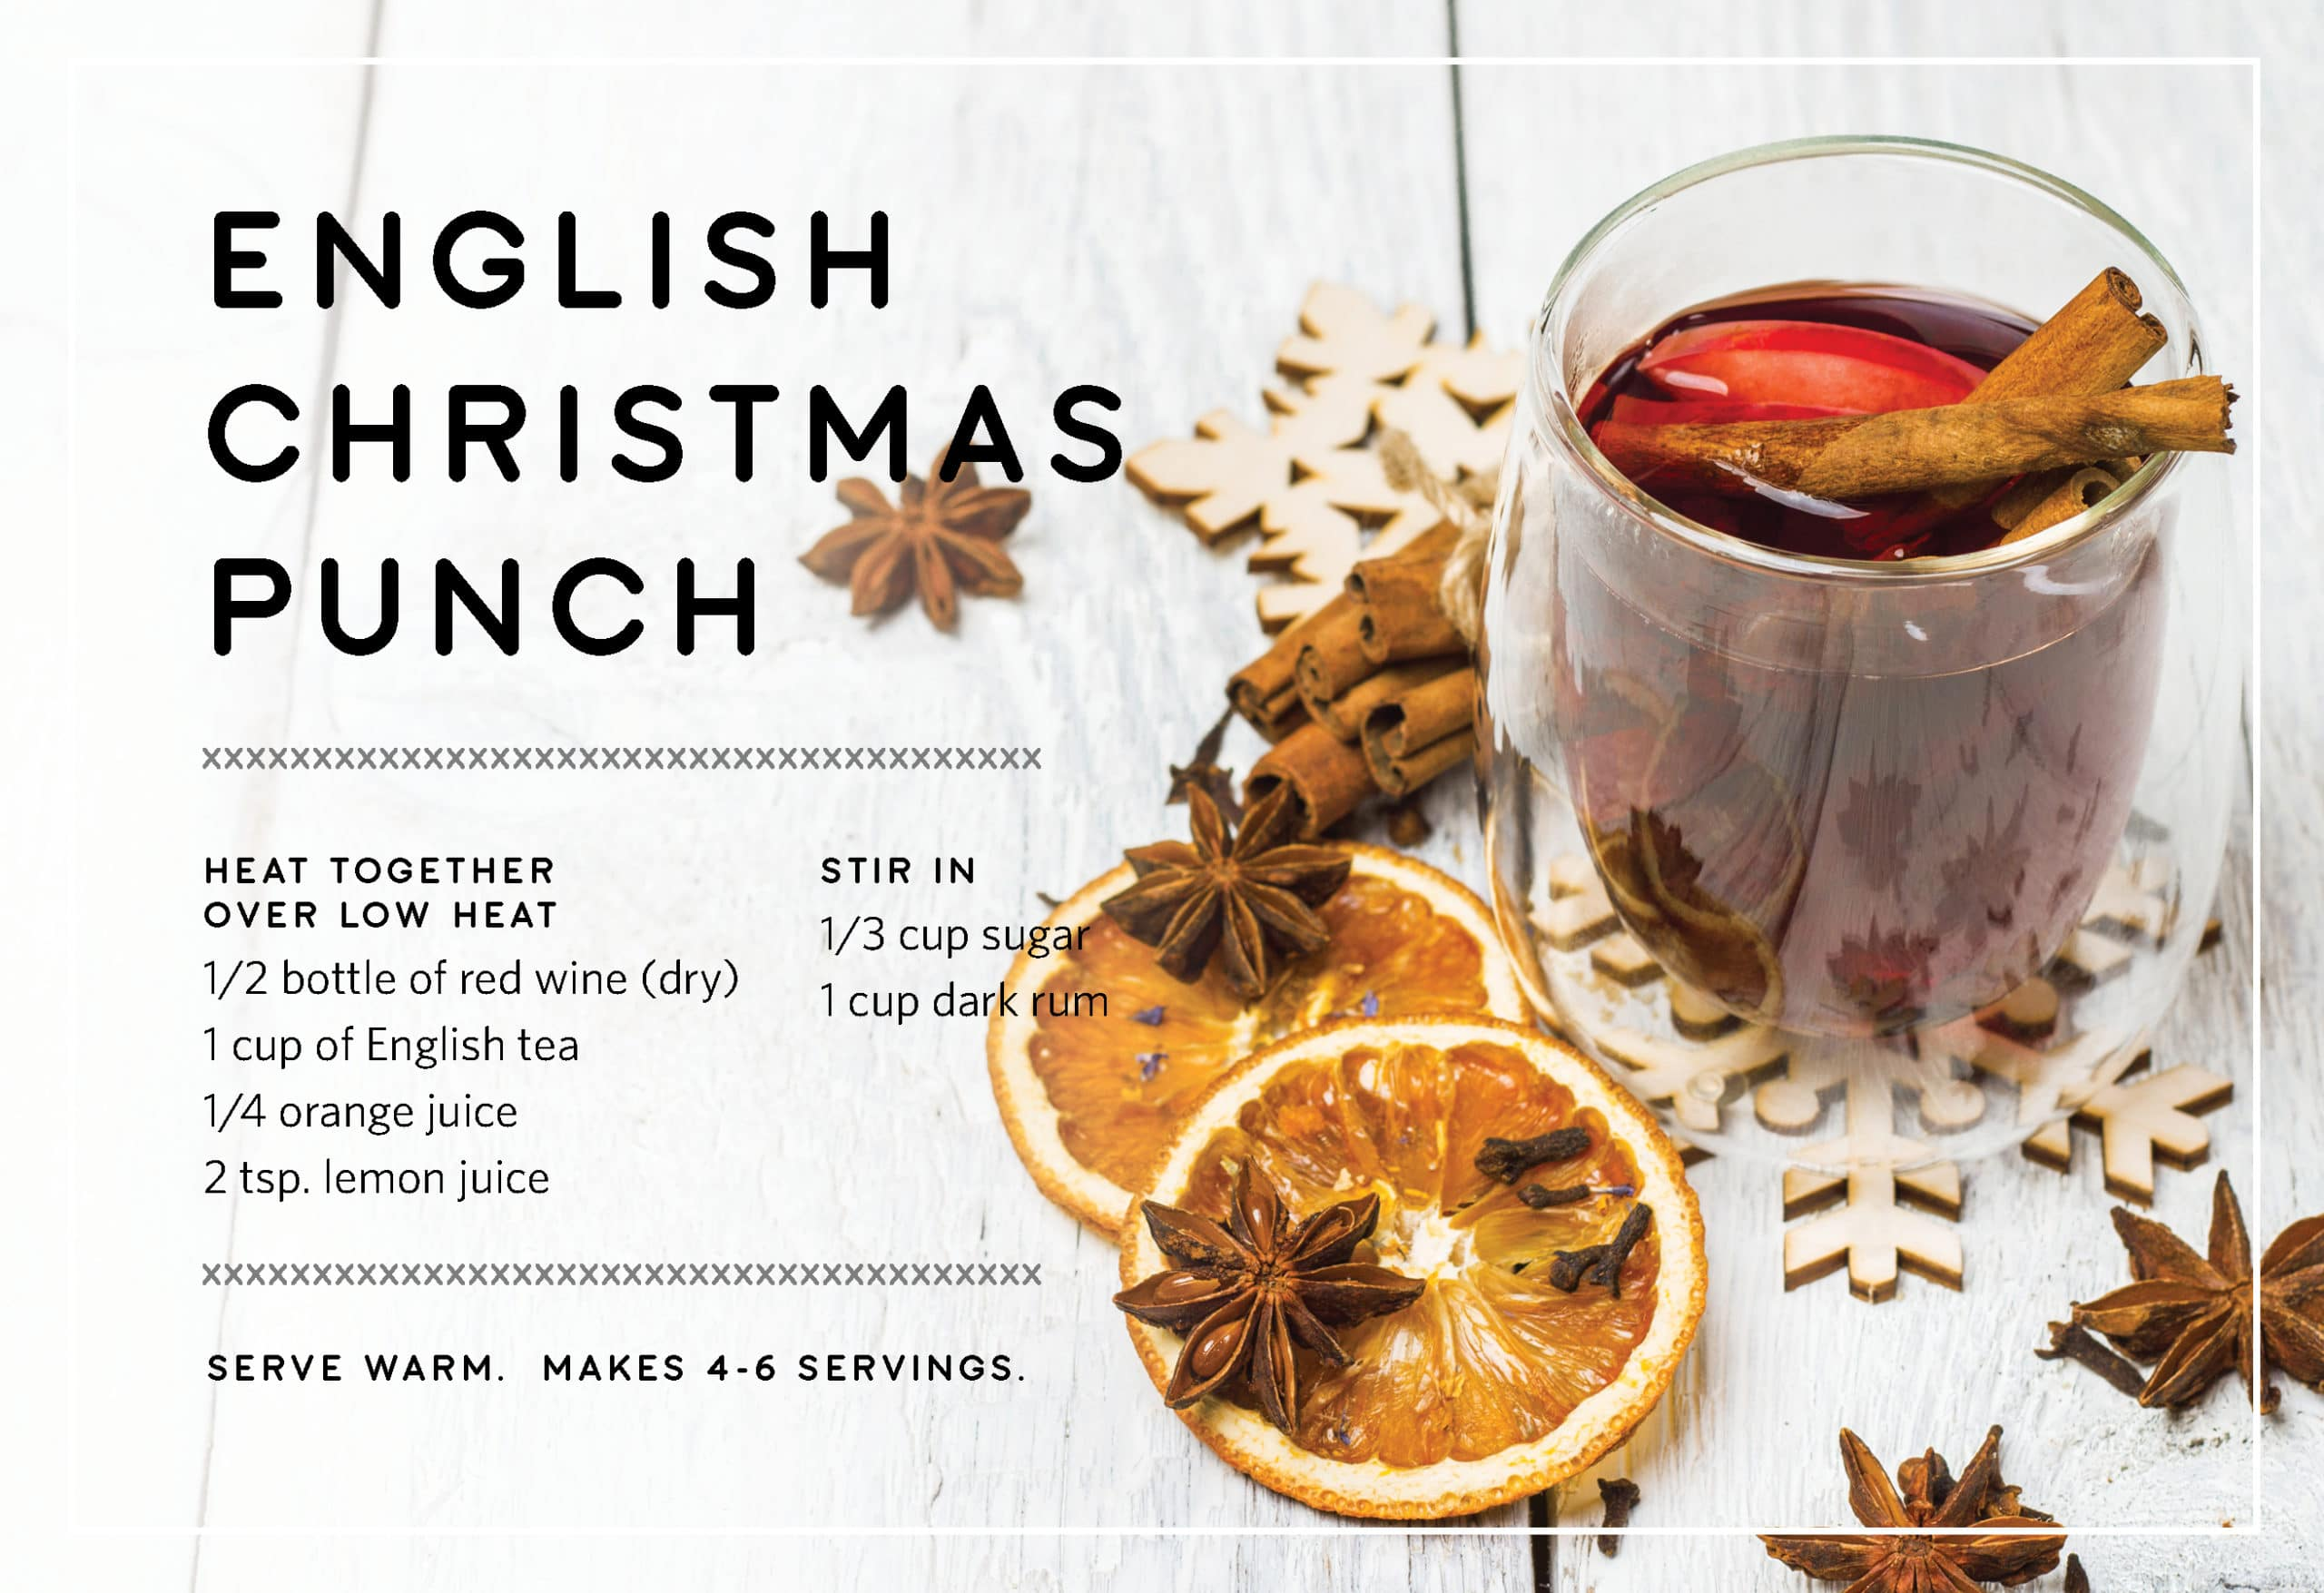 English Christmas Punch Holiday Drink Recipes